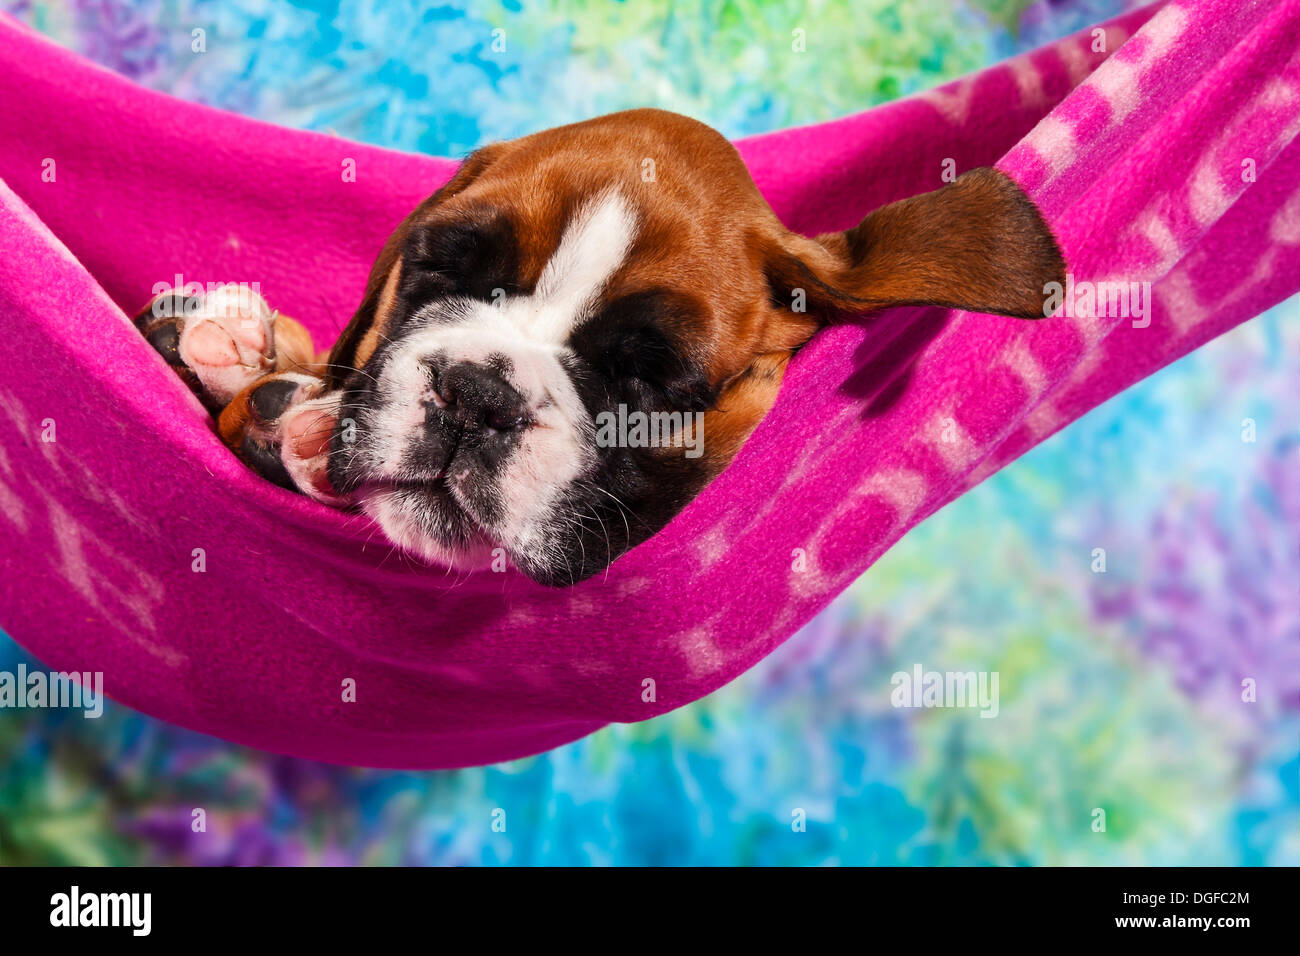 Boxer dog, puppy lying in a hammock - Stock Image